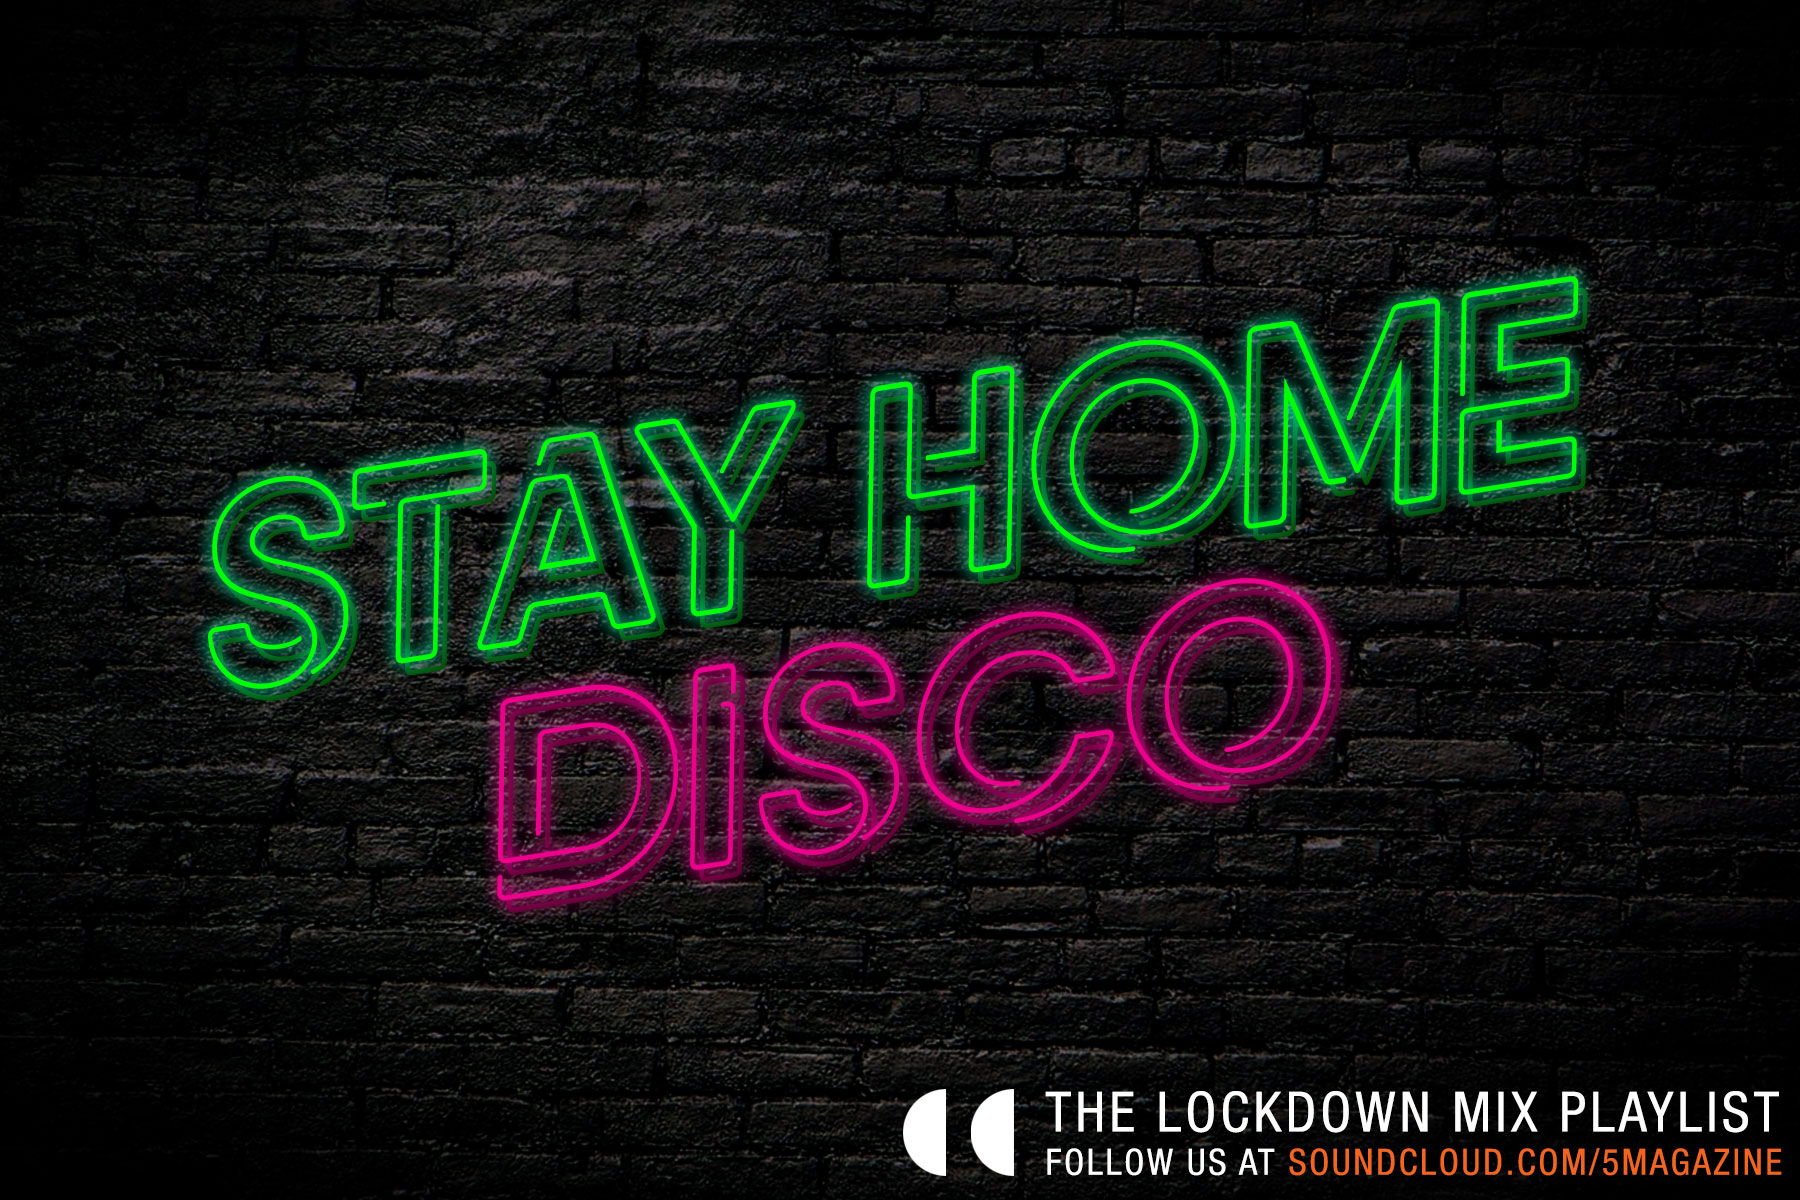 Introducing #StayHomeDisco - DJs Under Lockdown